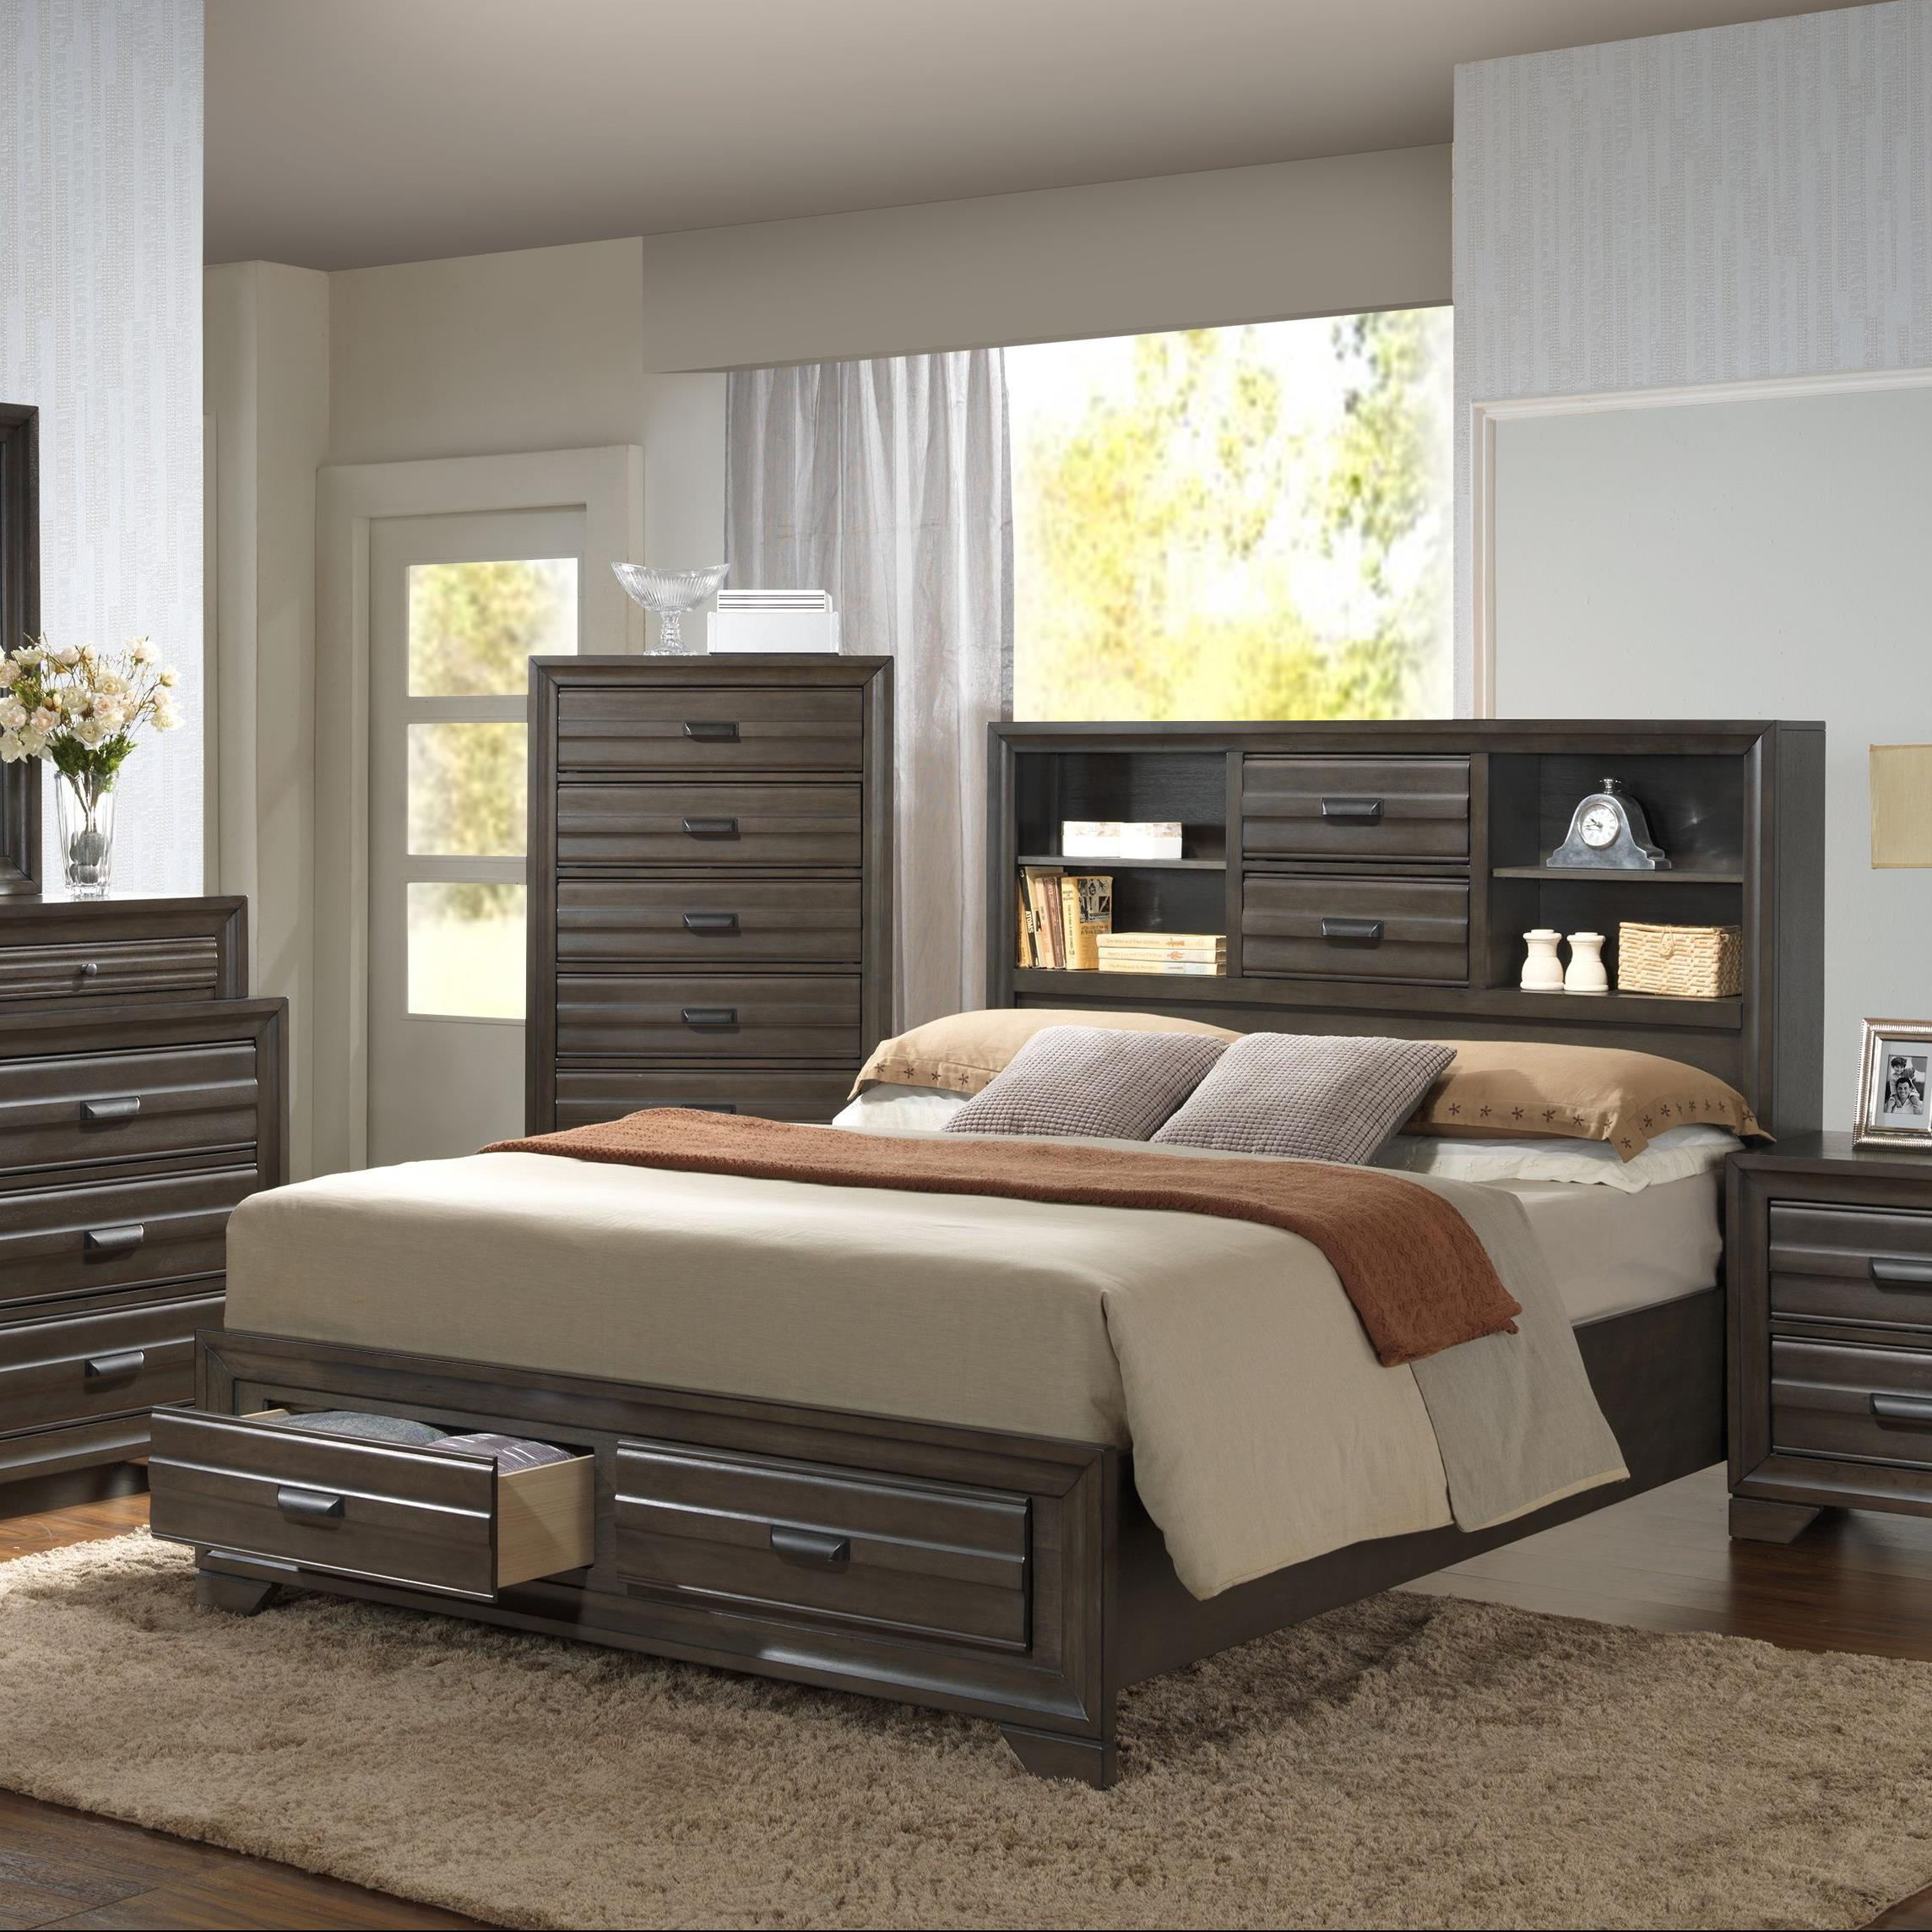 5236A King Storage Bed by Lifestyle at Beck's Furniture